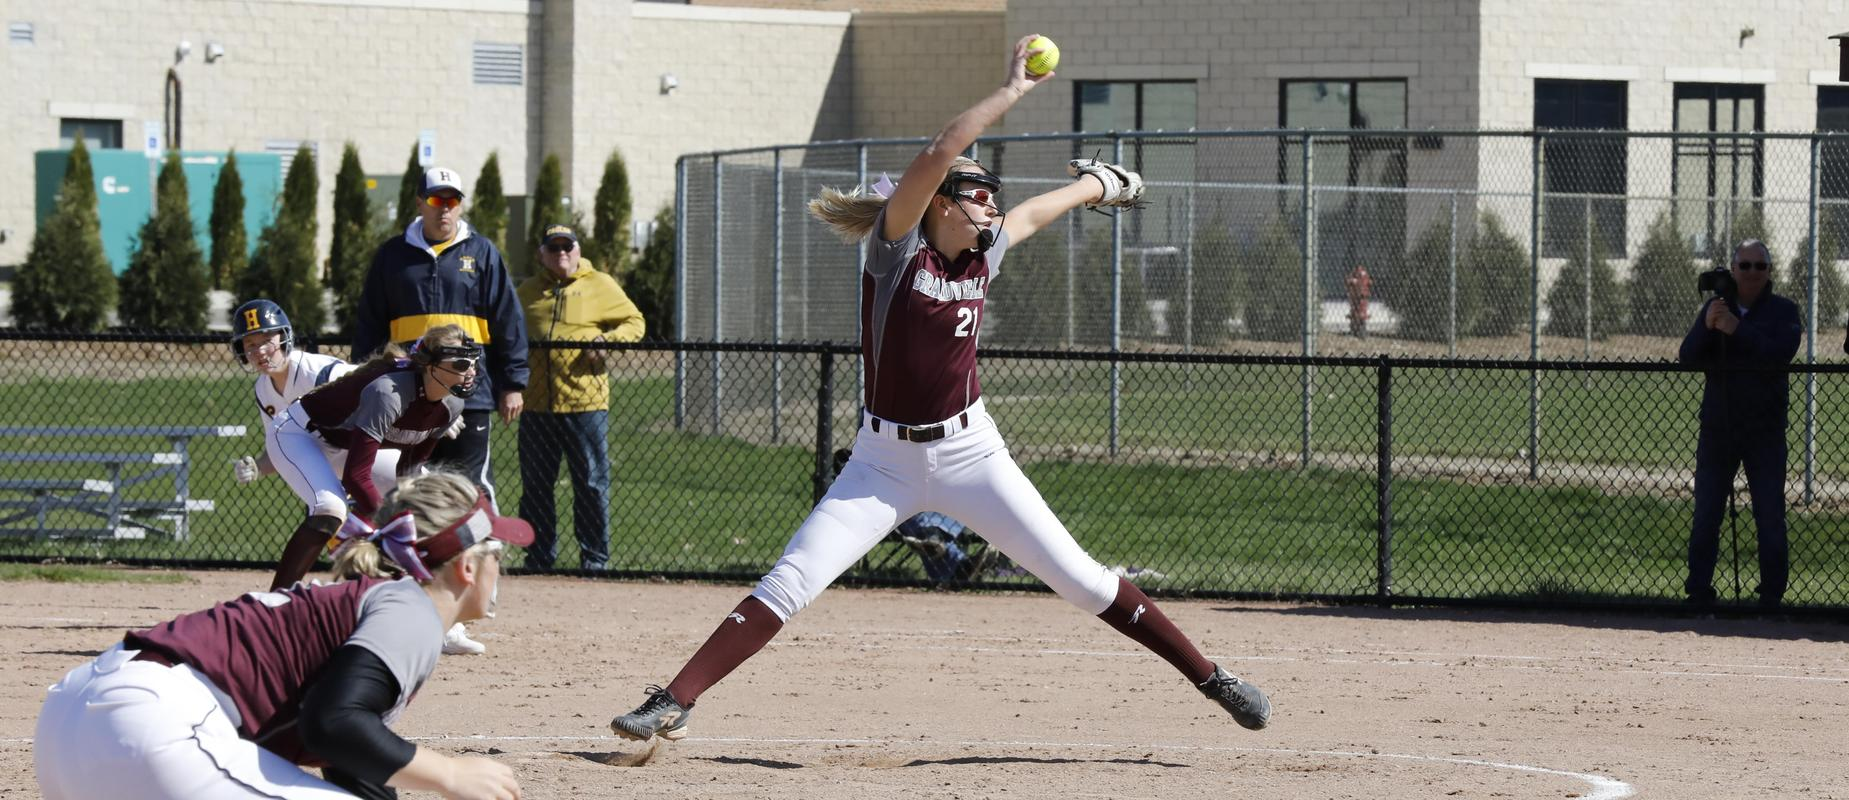 girl in maroon uniform pitches ball on diamond